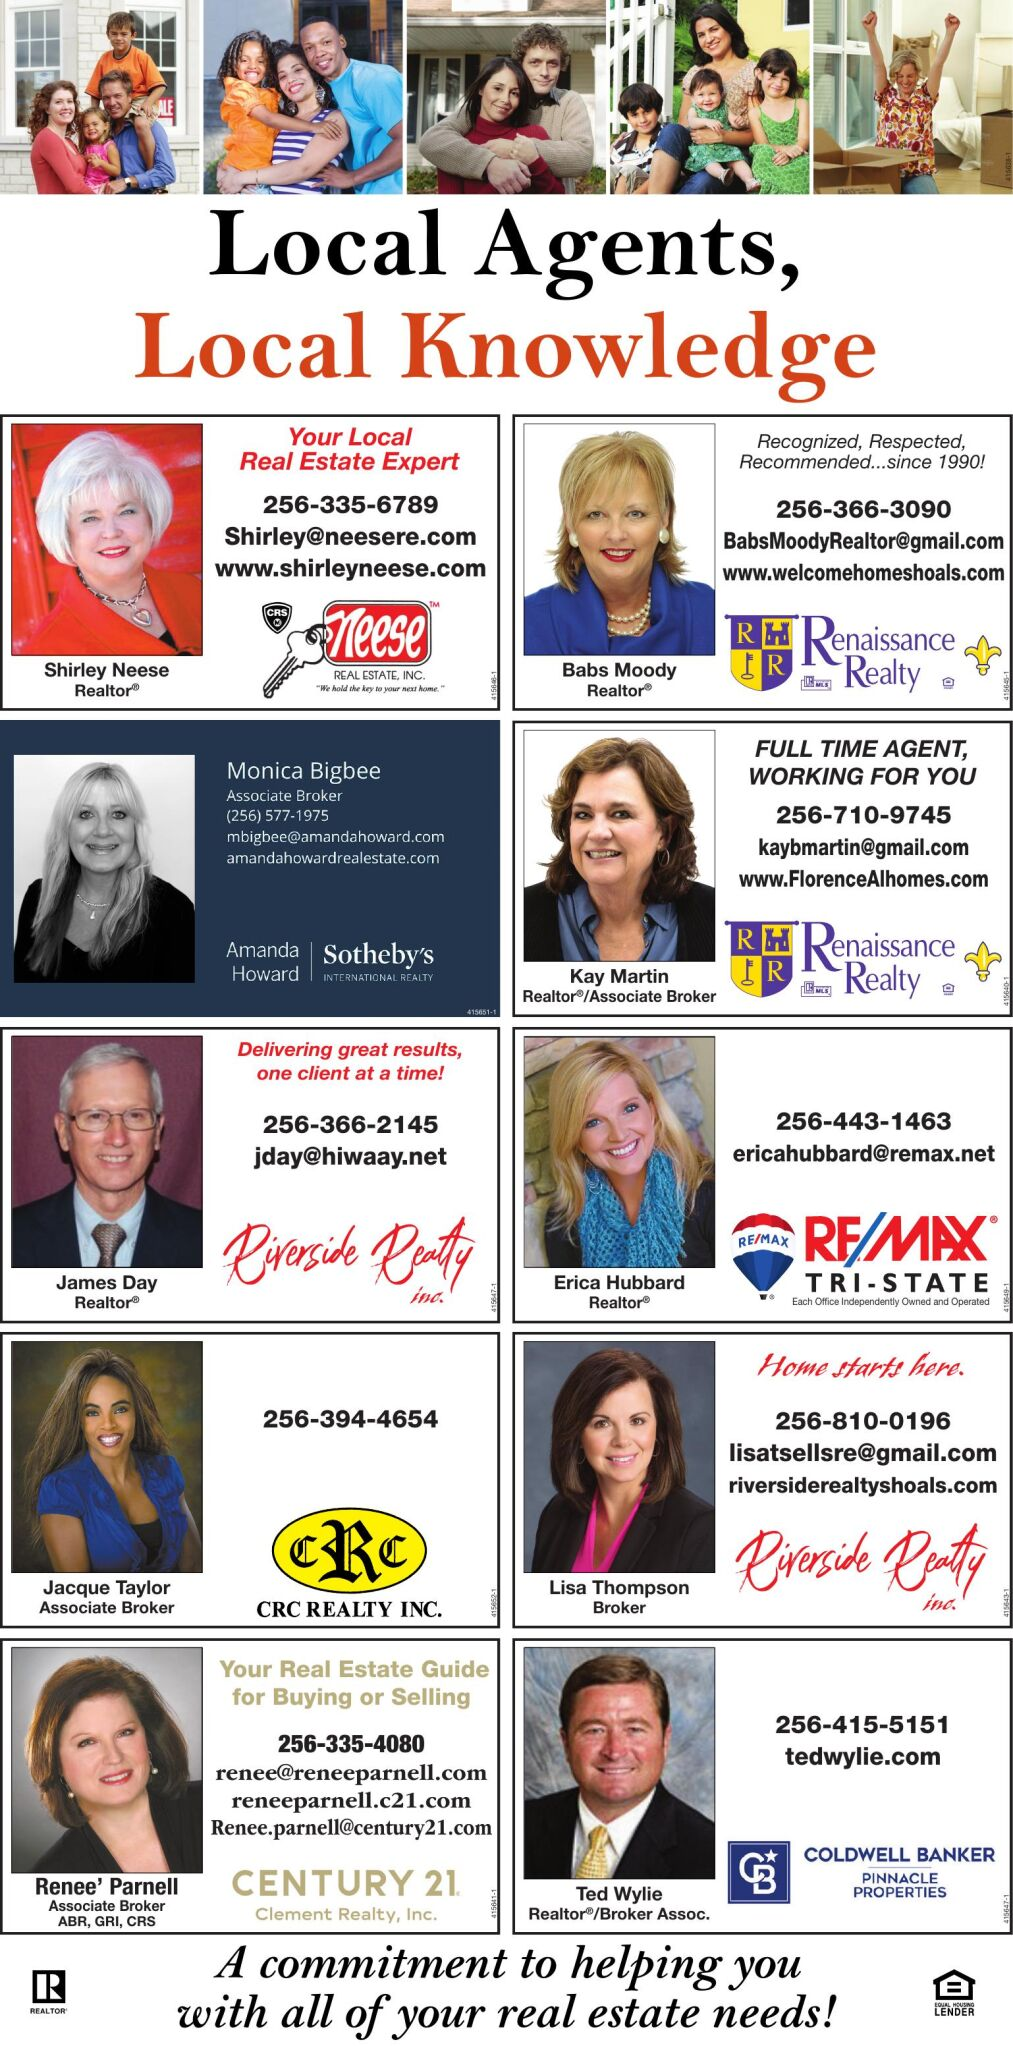 Local Agents, Local Knowledge